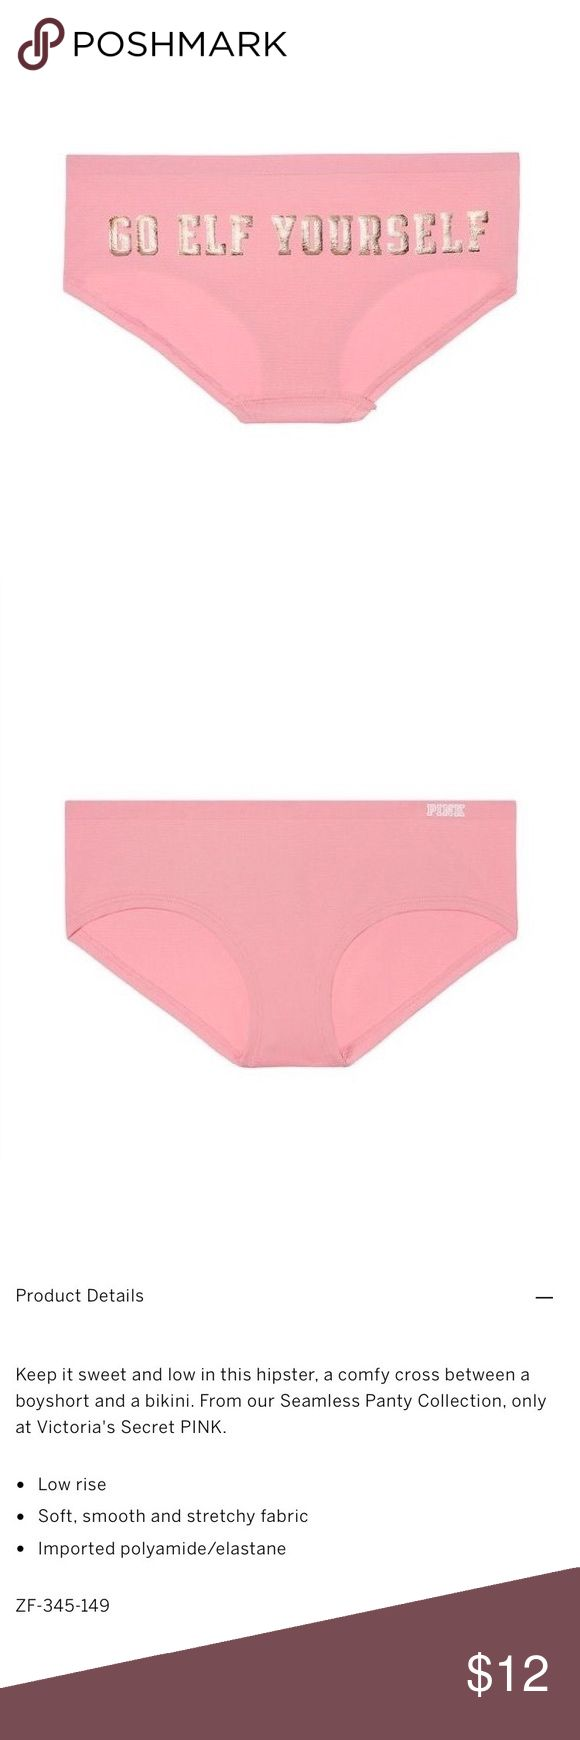 friend-mom-shows-panties ⚠ [pink victoria's secret] seamless hipster panty NWT